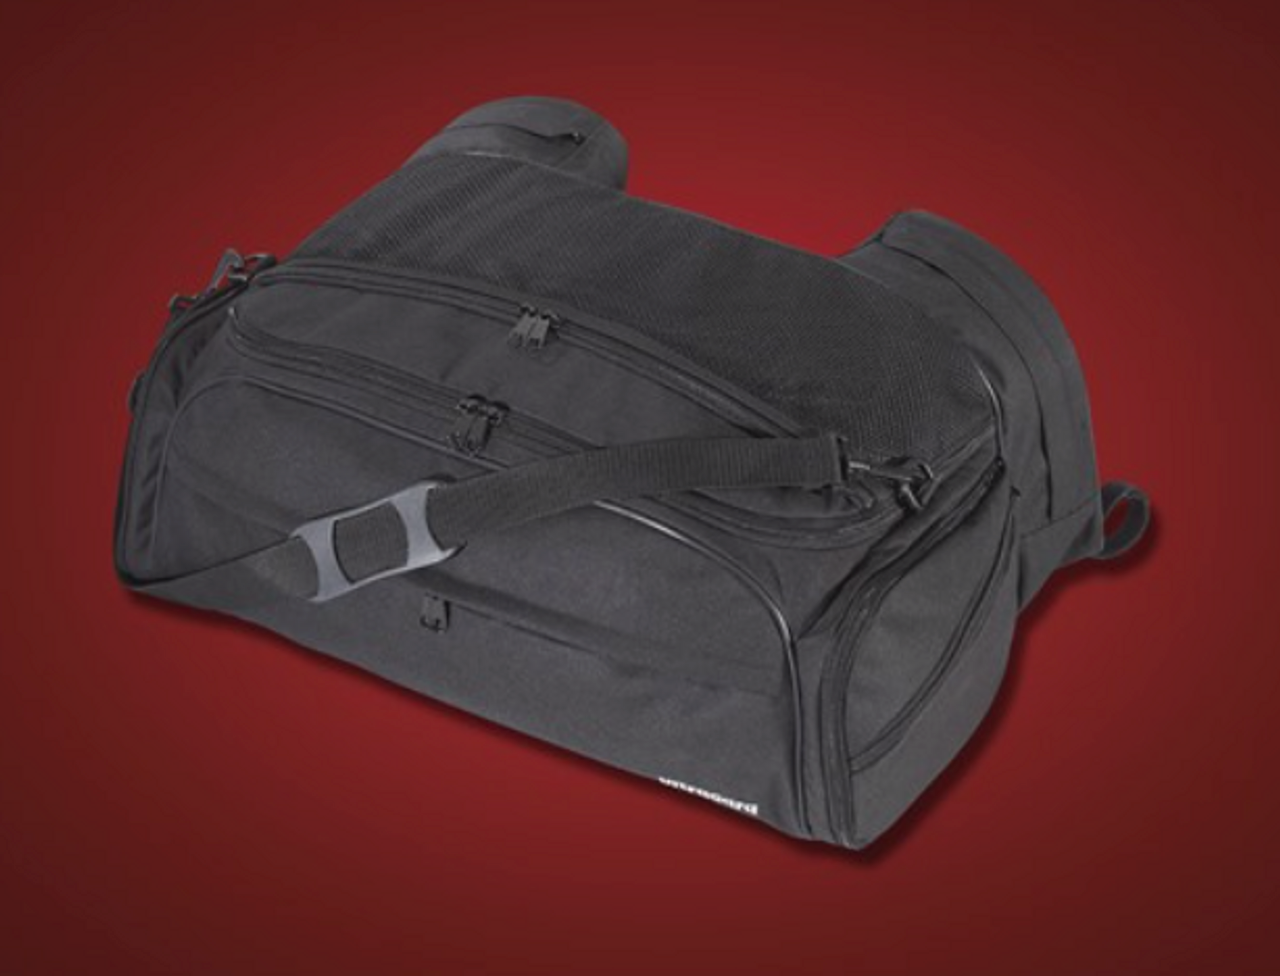 Touring Luggage Rack Bag